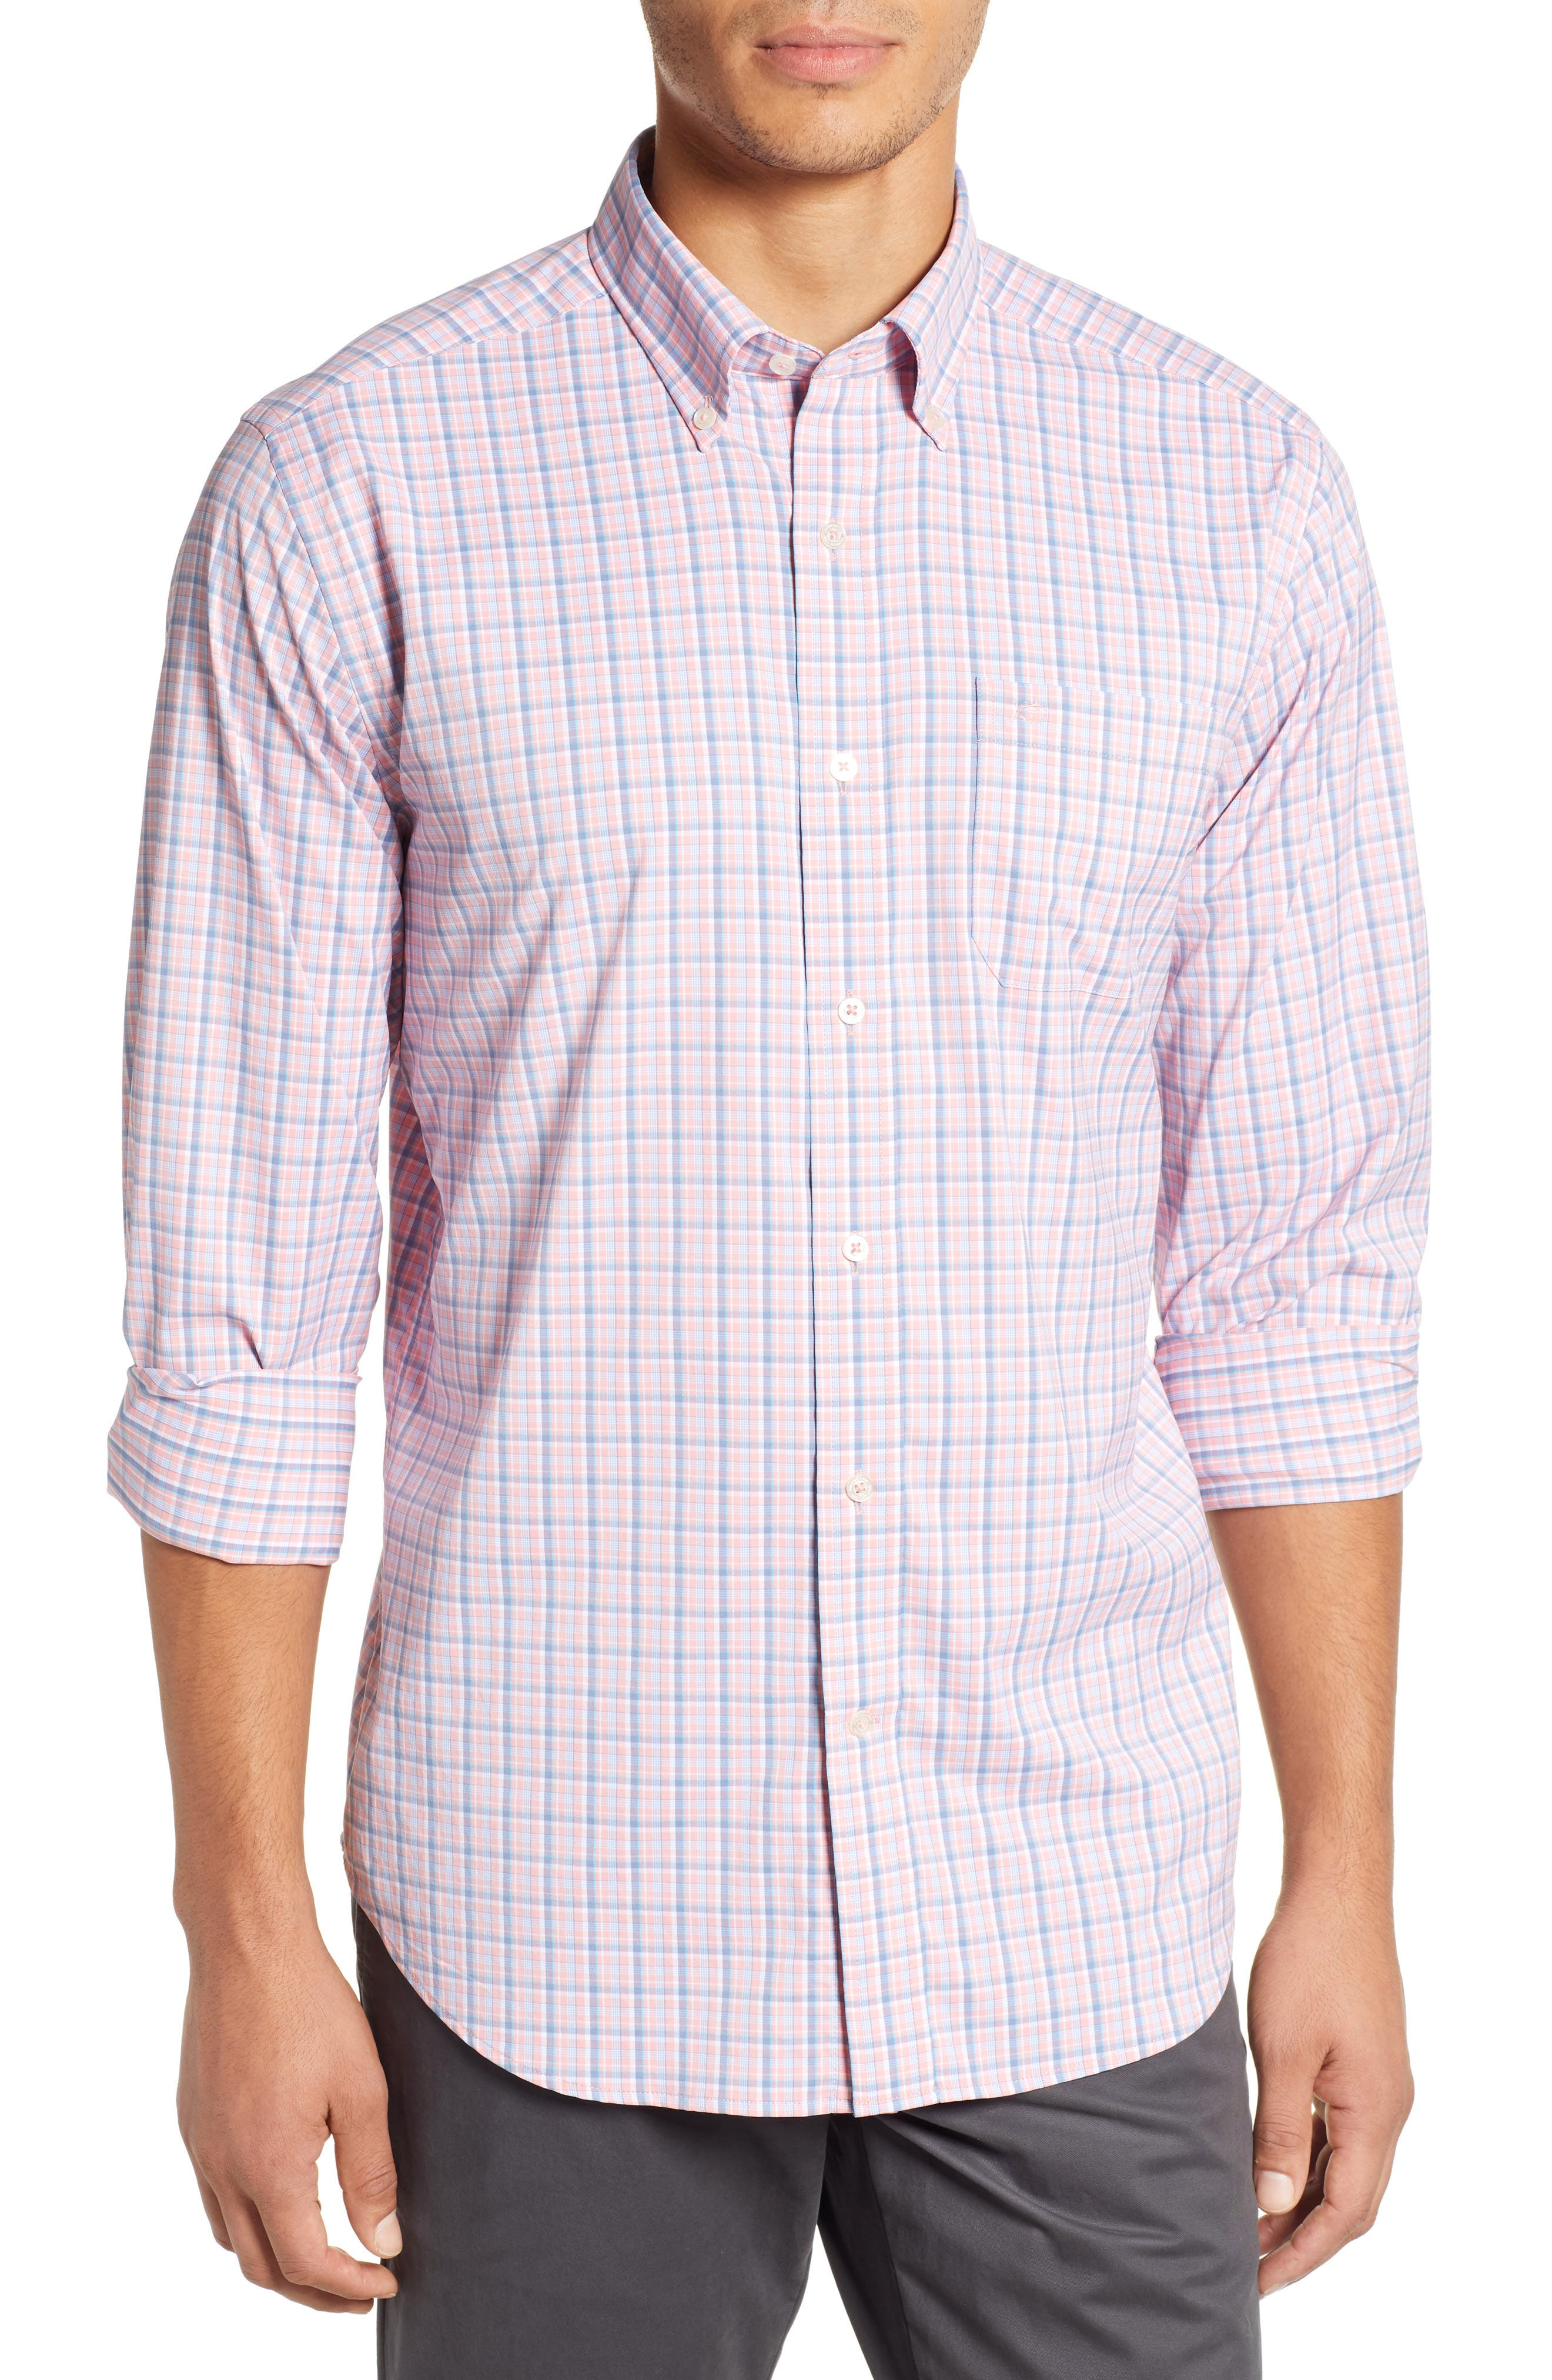 SOUTHERN TIDE Staycation Intercoastal Regular Fit Plaid Performance Sport Shirt in Flamingo Pink